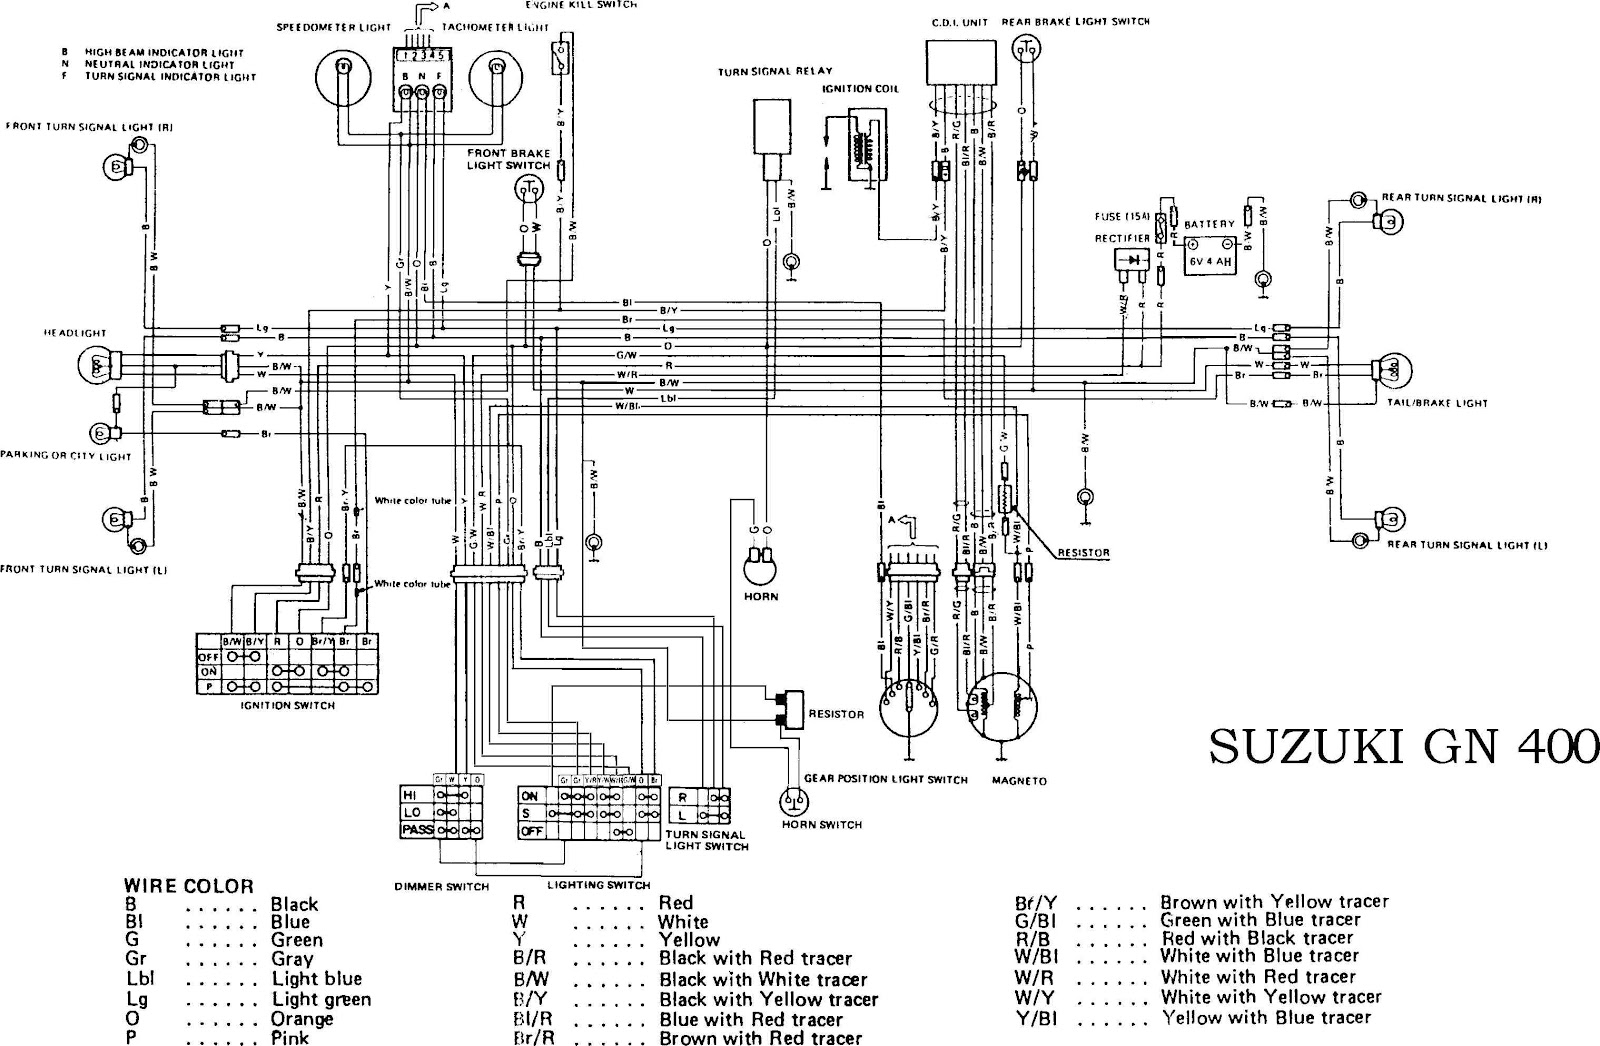 98 Gs400 Wiring Diagram Download Diagrams For 1999 Lexus Gs300 Suzuki Gsx R600 Srad Motorcycle 1998 Complete Electrical Race